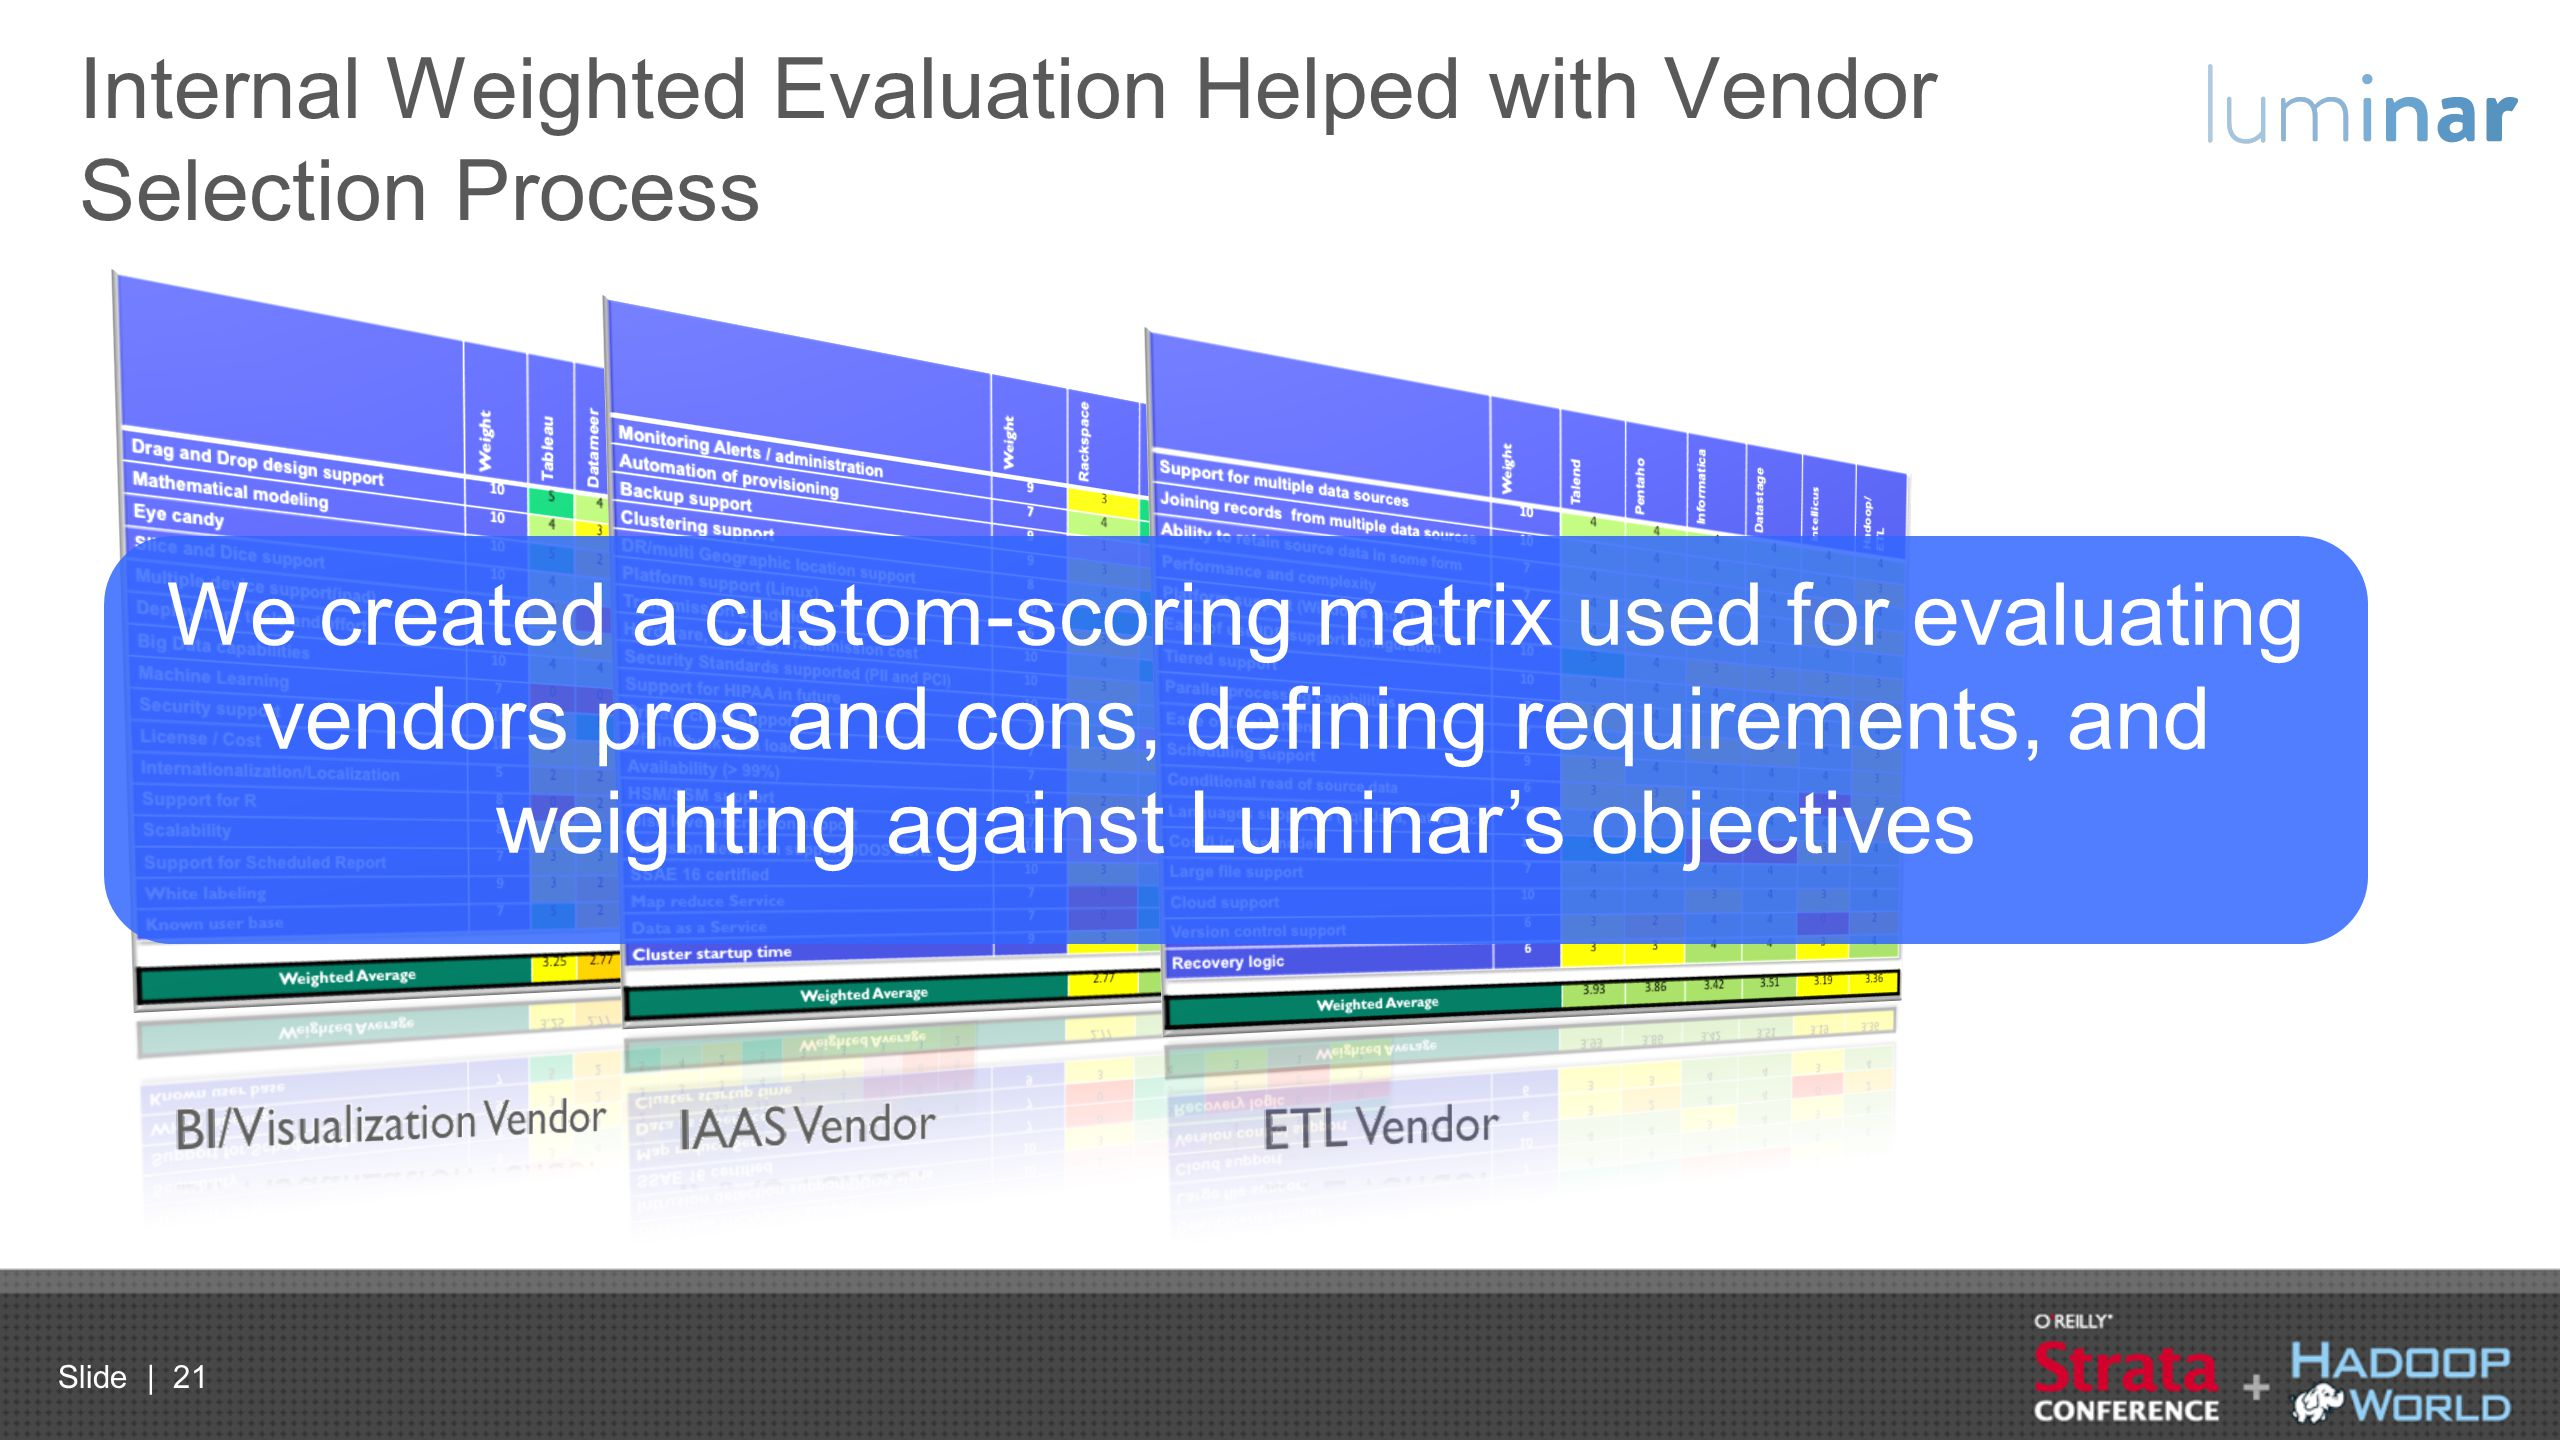 Internal Weighted Evaluation Helped with Vendor Selection Process